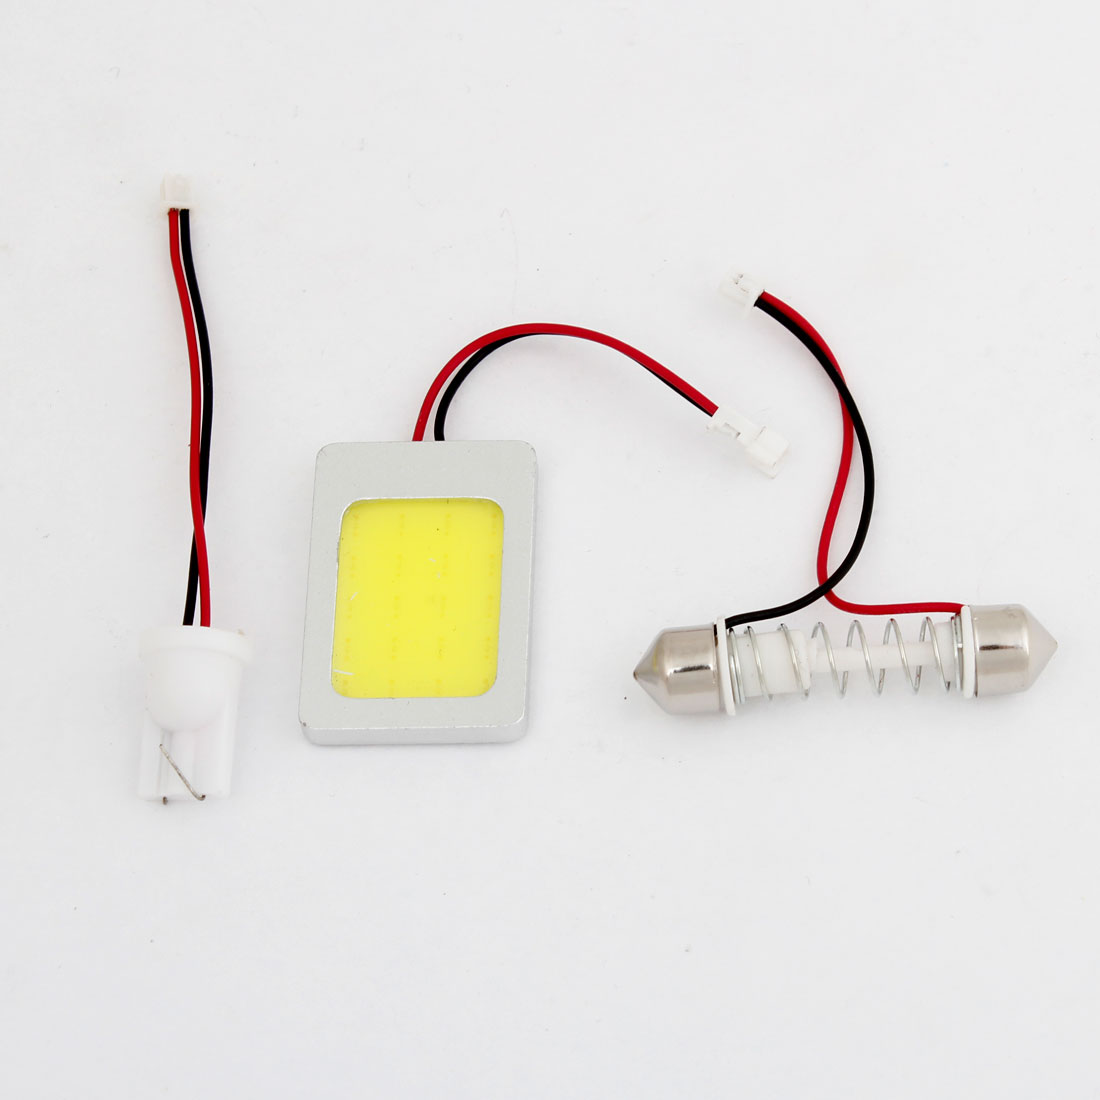 Vehicle 20 White COB LED Dome Lamp Bulb w T10 Festoon Adapter 1.5W